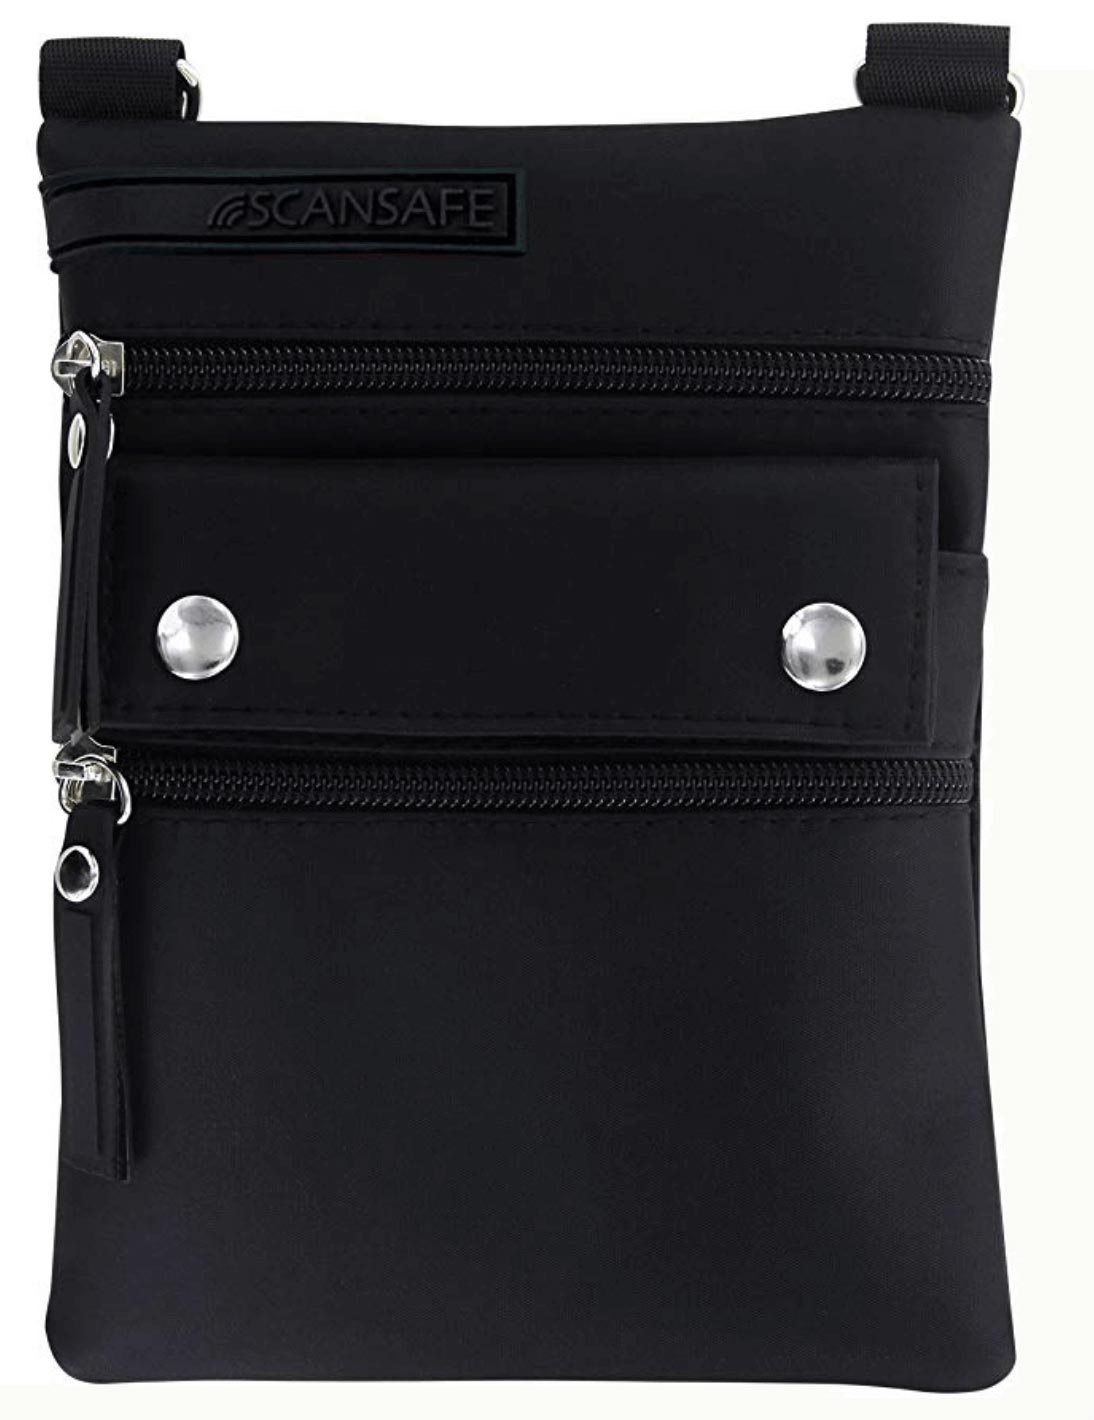 Travel_GiftsScansafe-Mini-Cross-Body-Bag